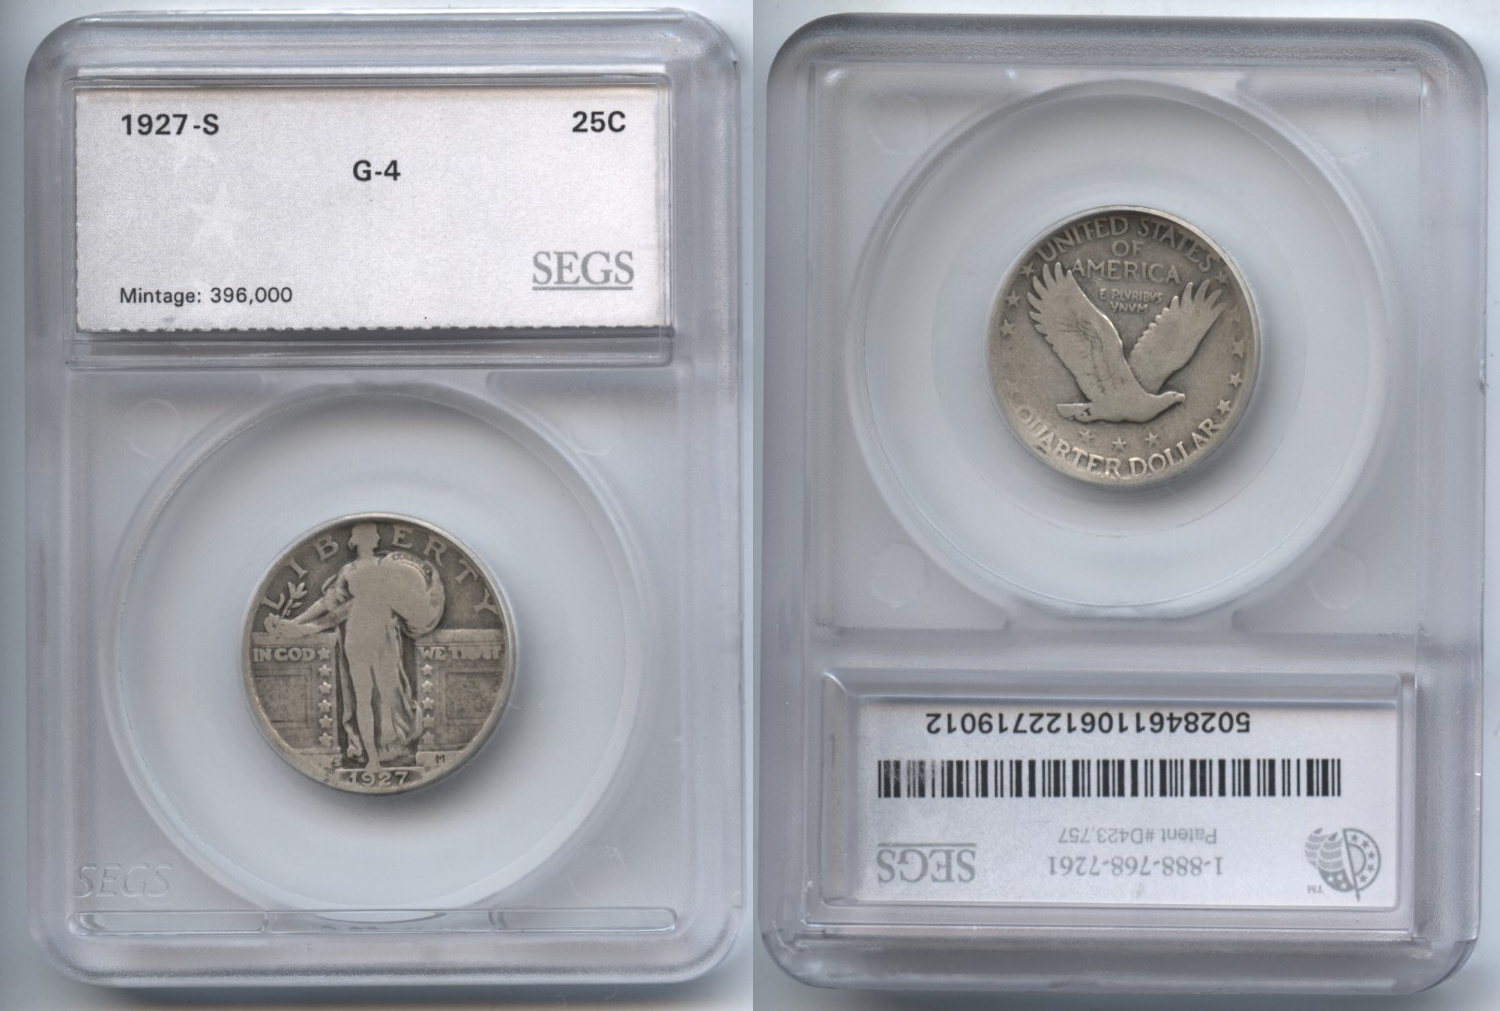 1927-S Standing Liberty Quarter SEGS Good-4